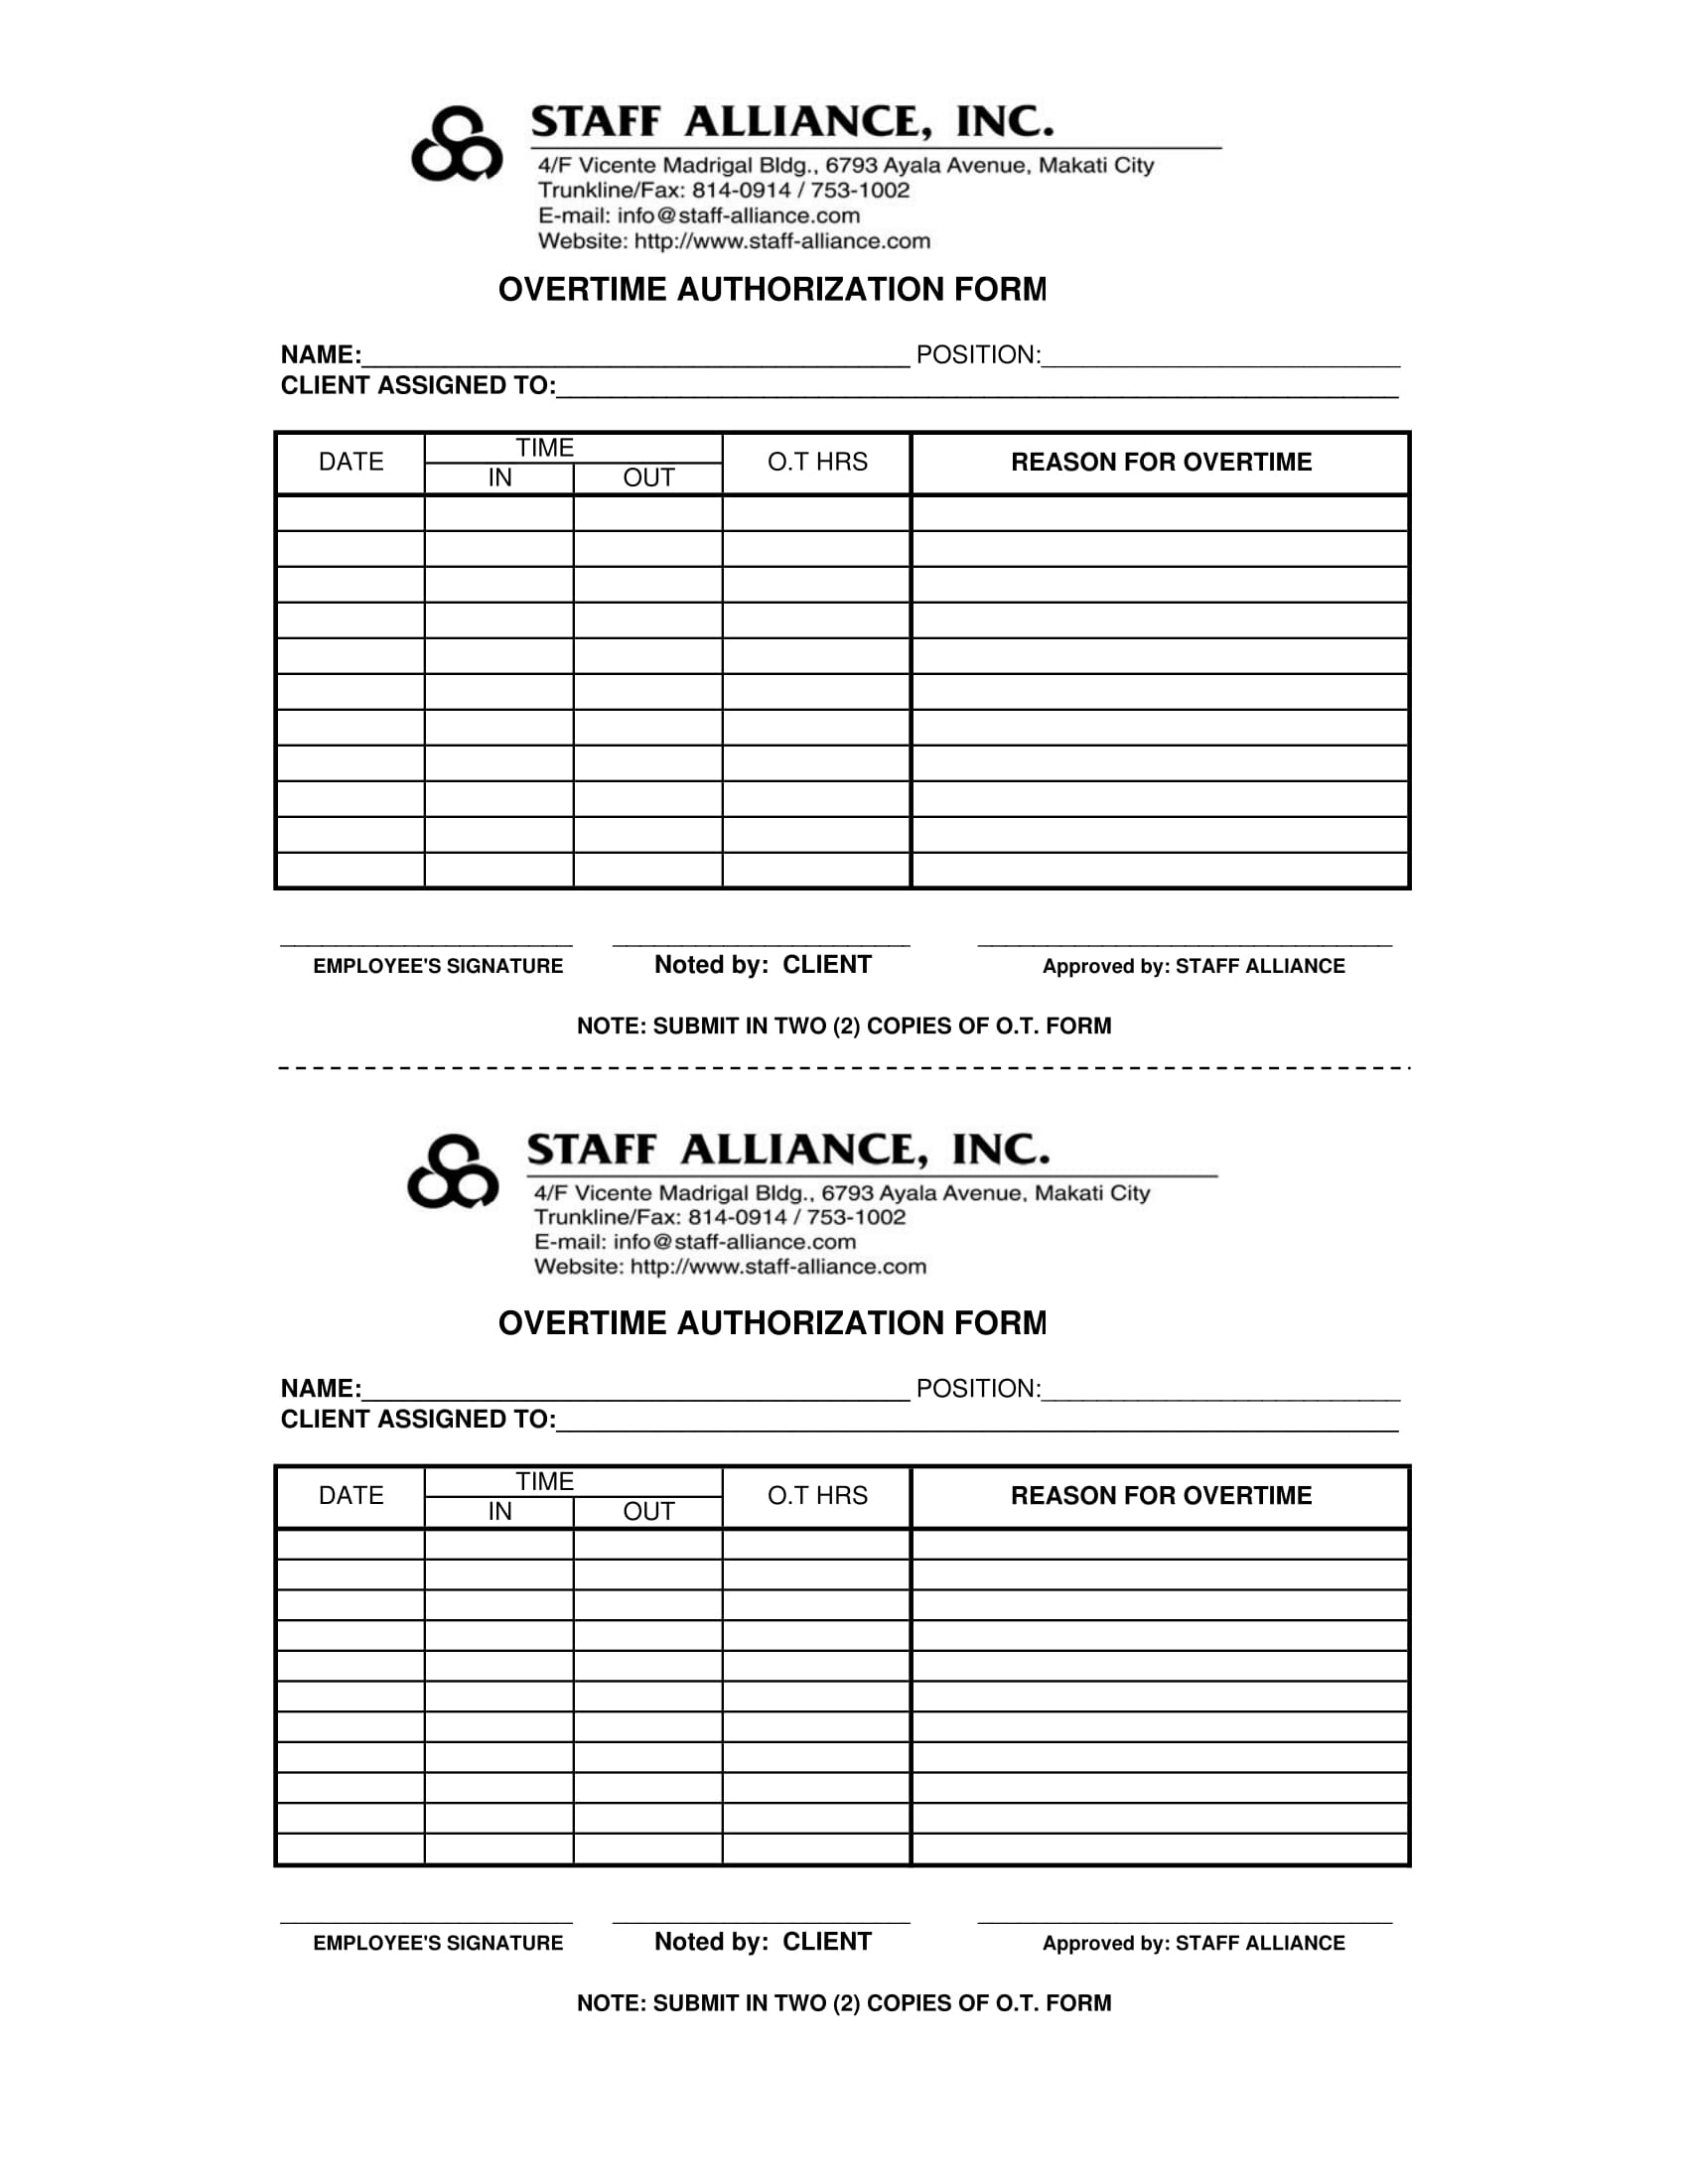 overtime authorization short form 1